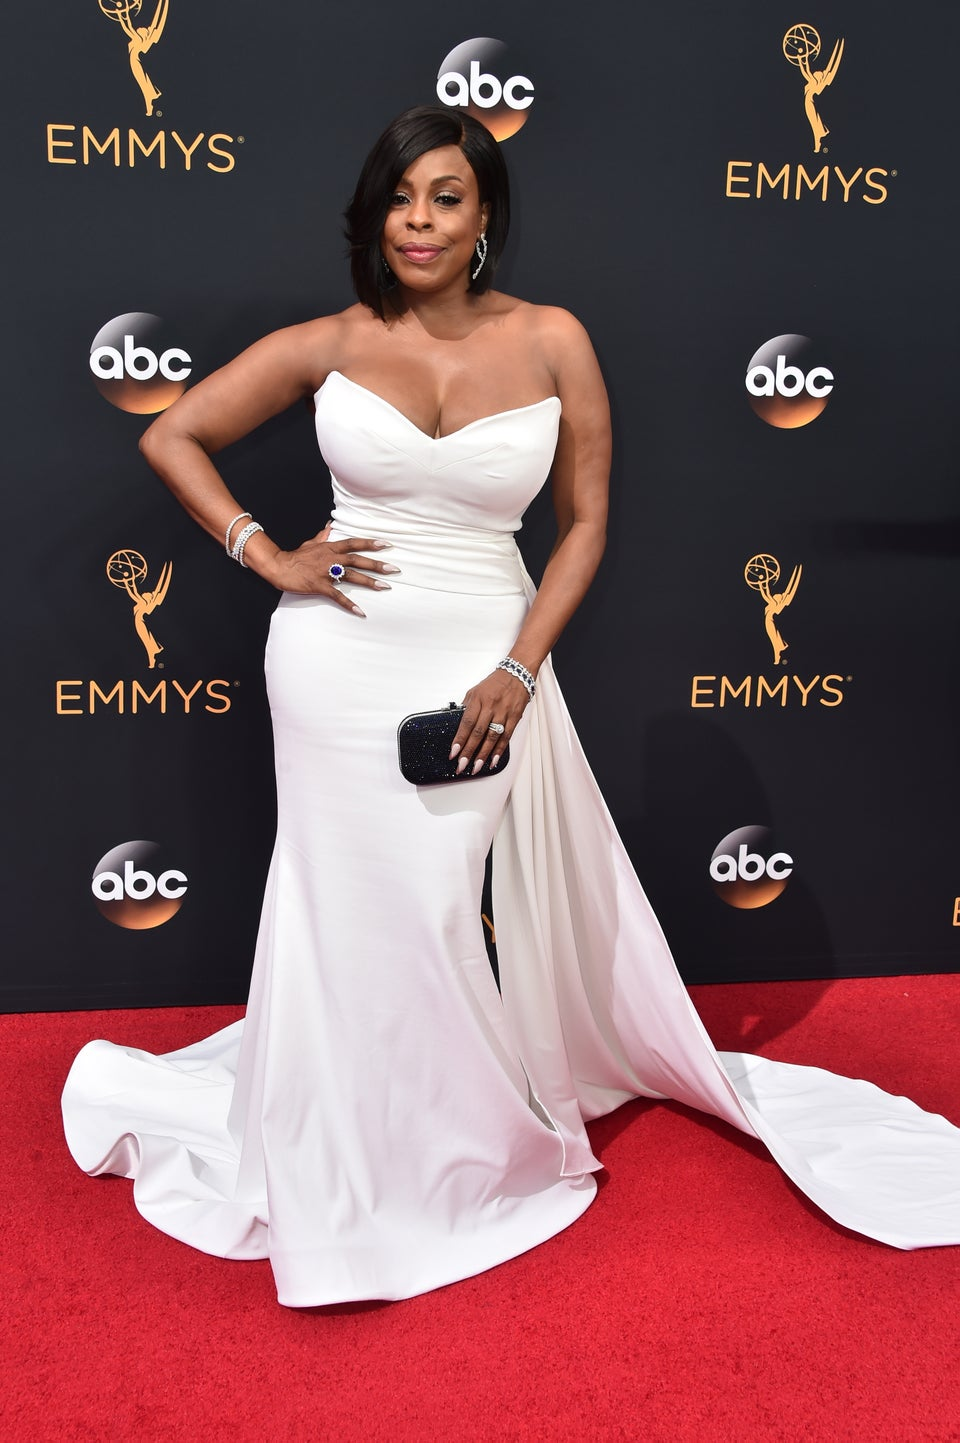 Niecy Nash Slays in a White Hot Gown At the Emmys